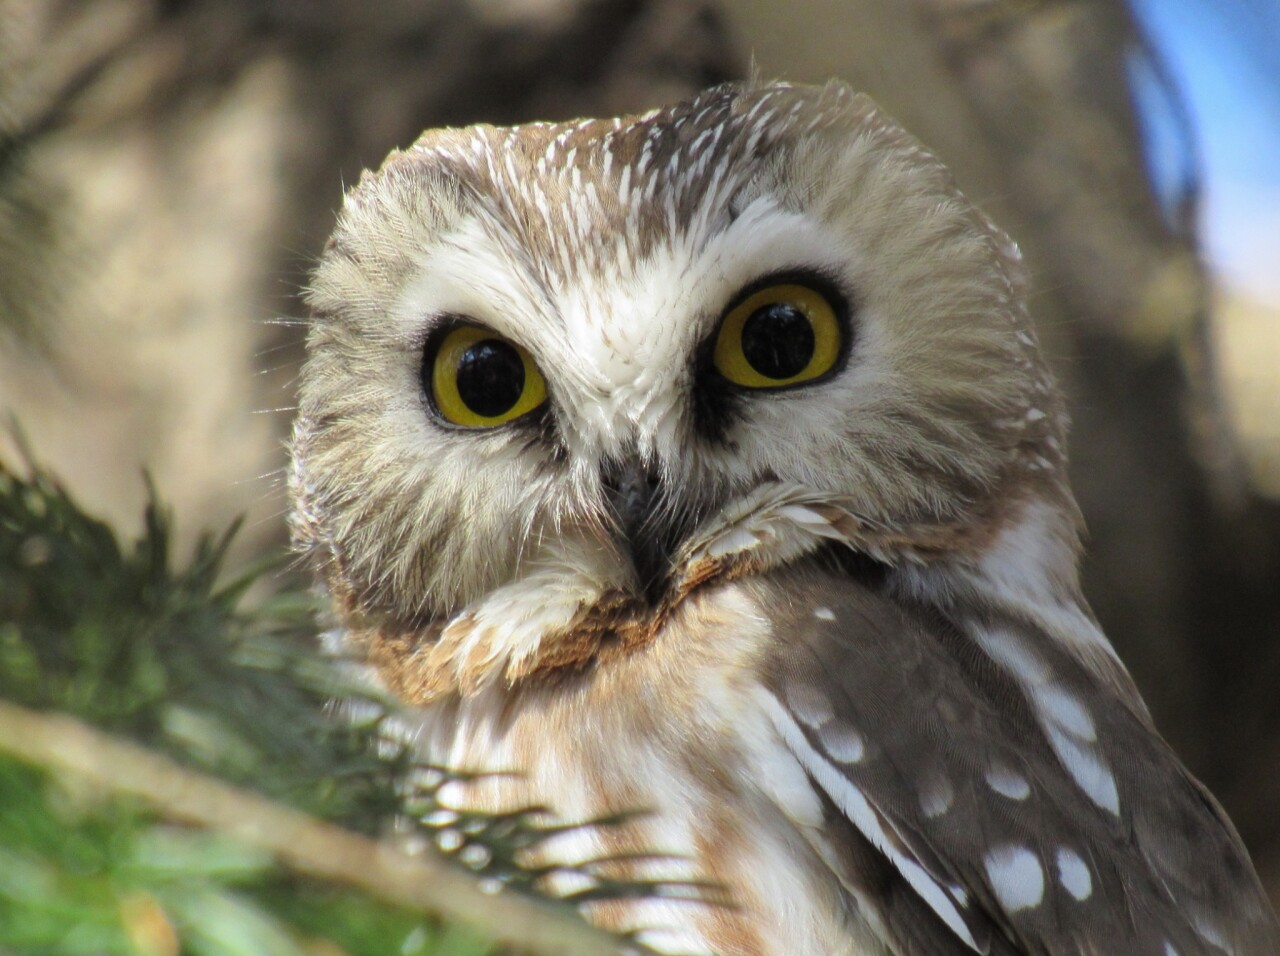 Hoo there? The Northern Saw-whet Owl, that's hoo